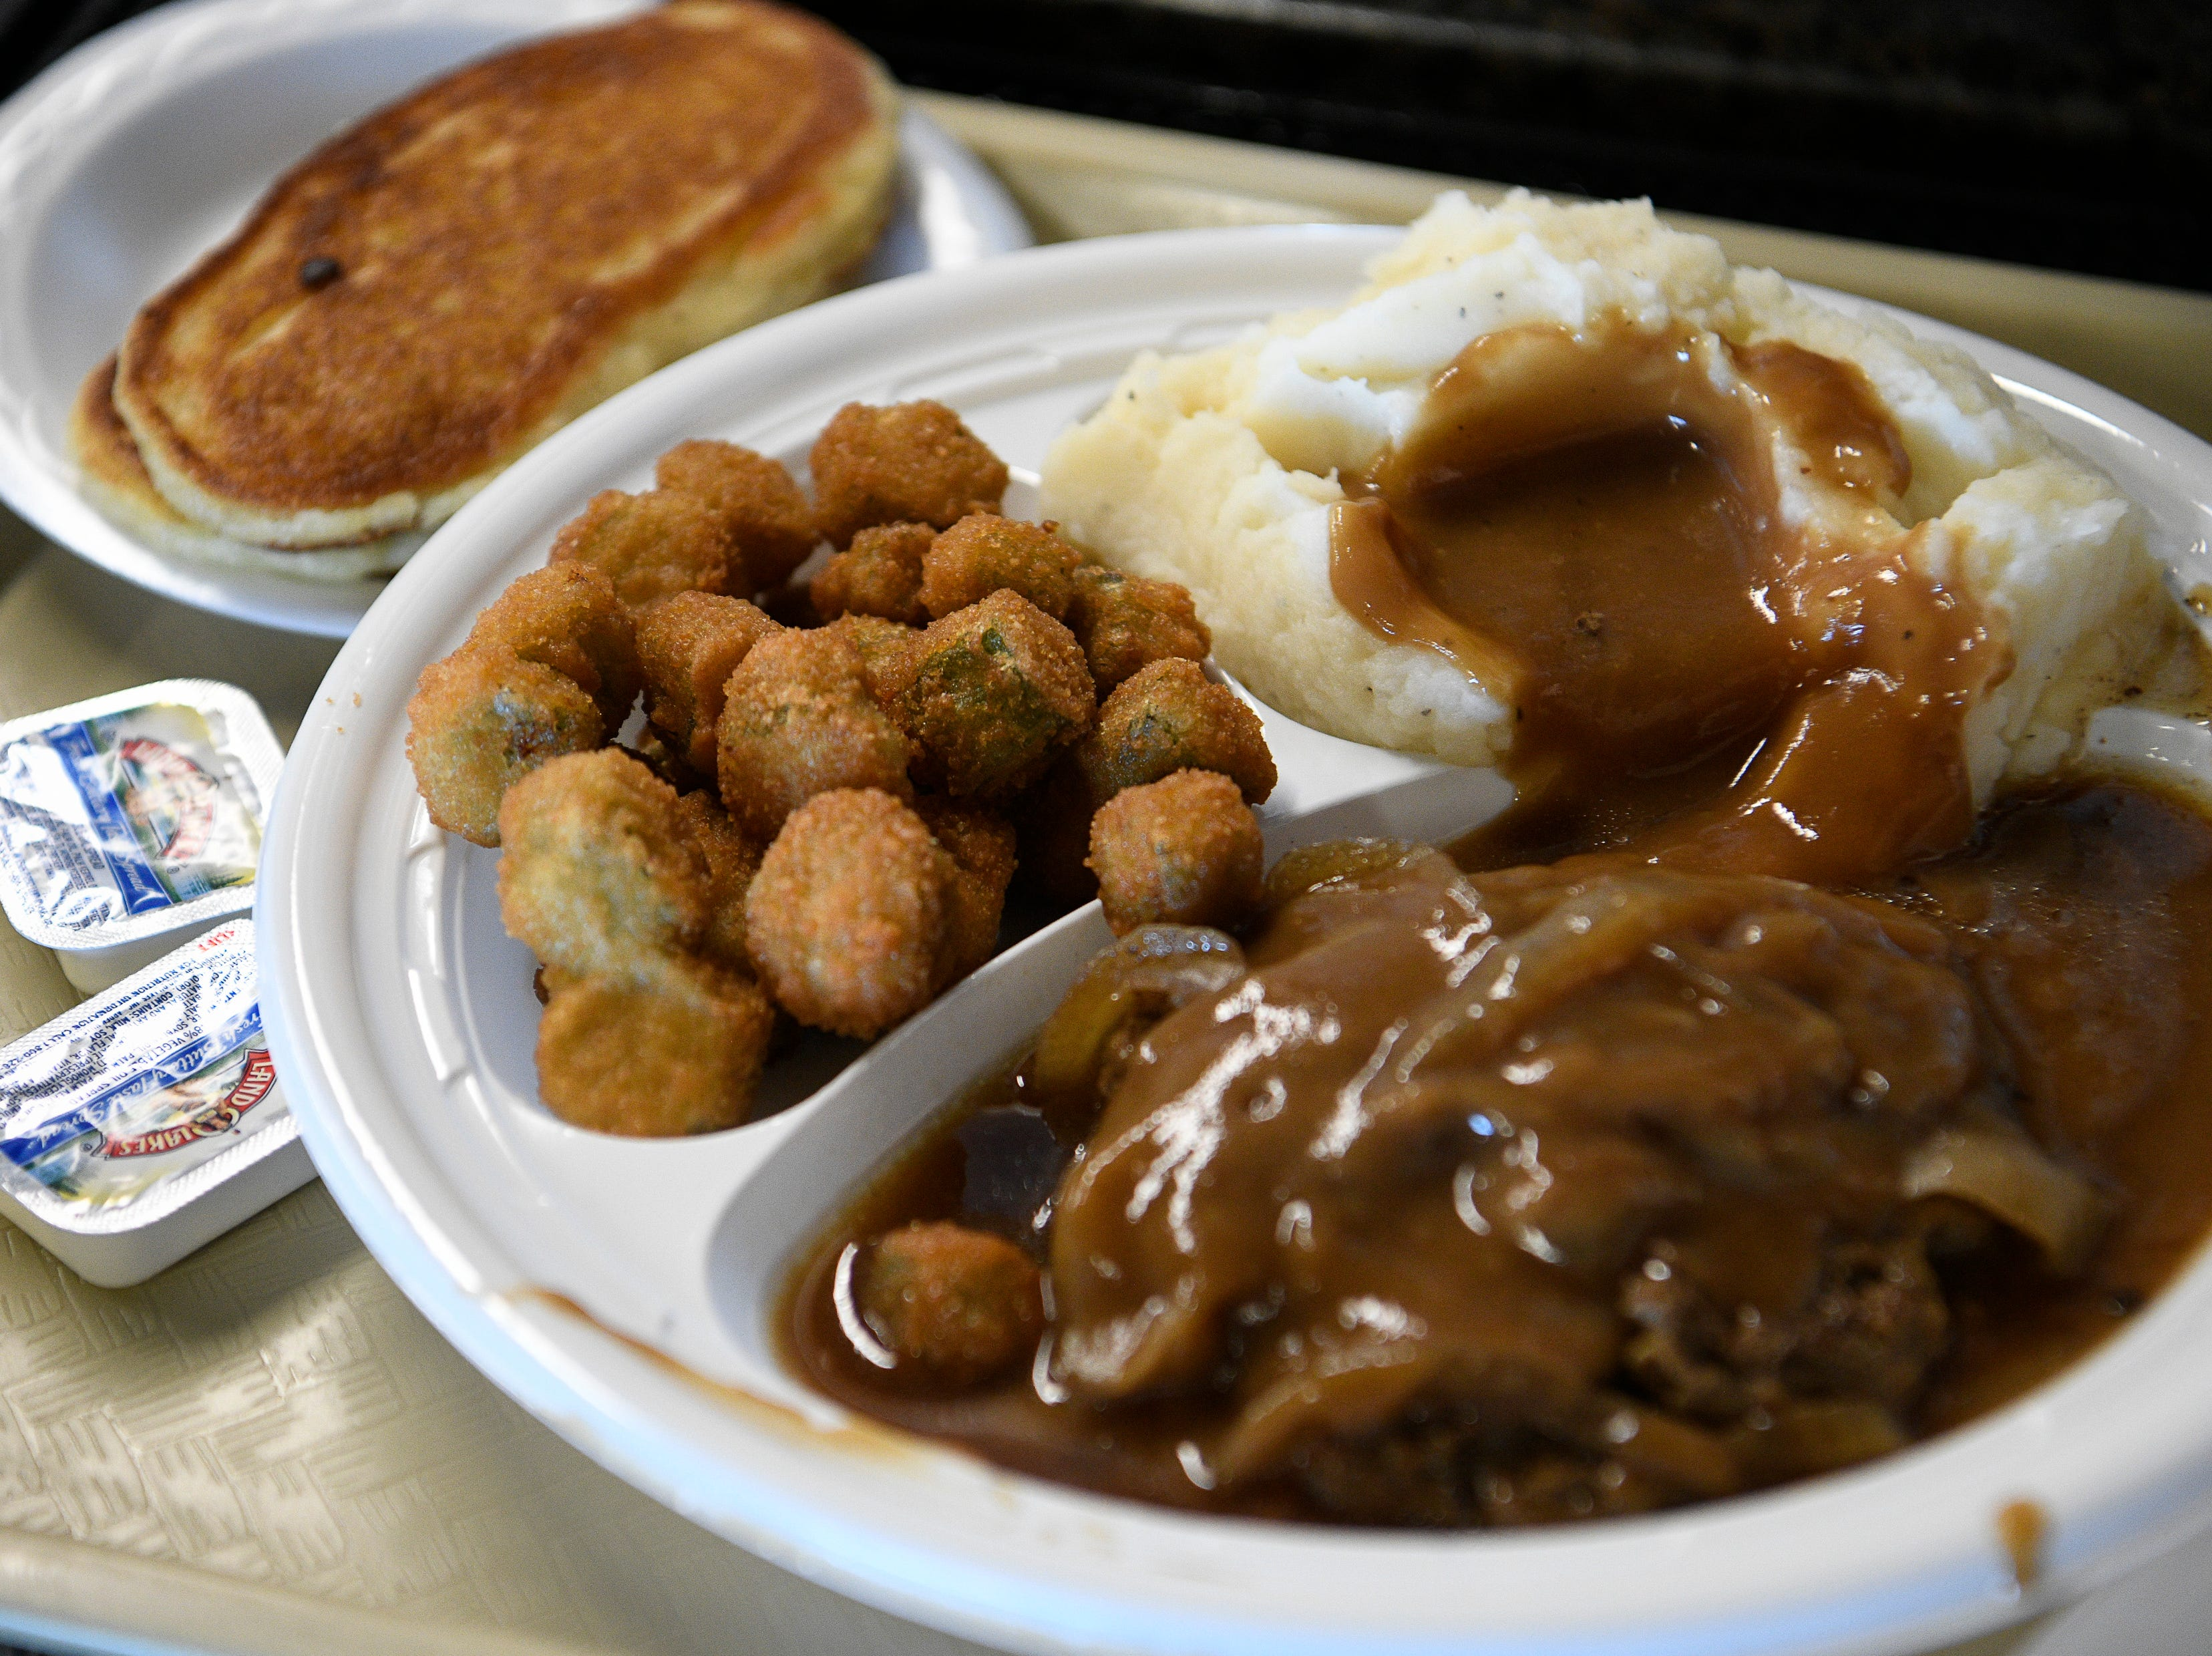 A hot lunch plate from Dairy King Wednesday Jan. 30, 2019 in Nashville, Tenn.